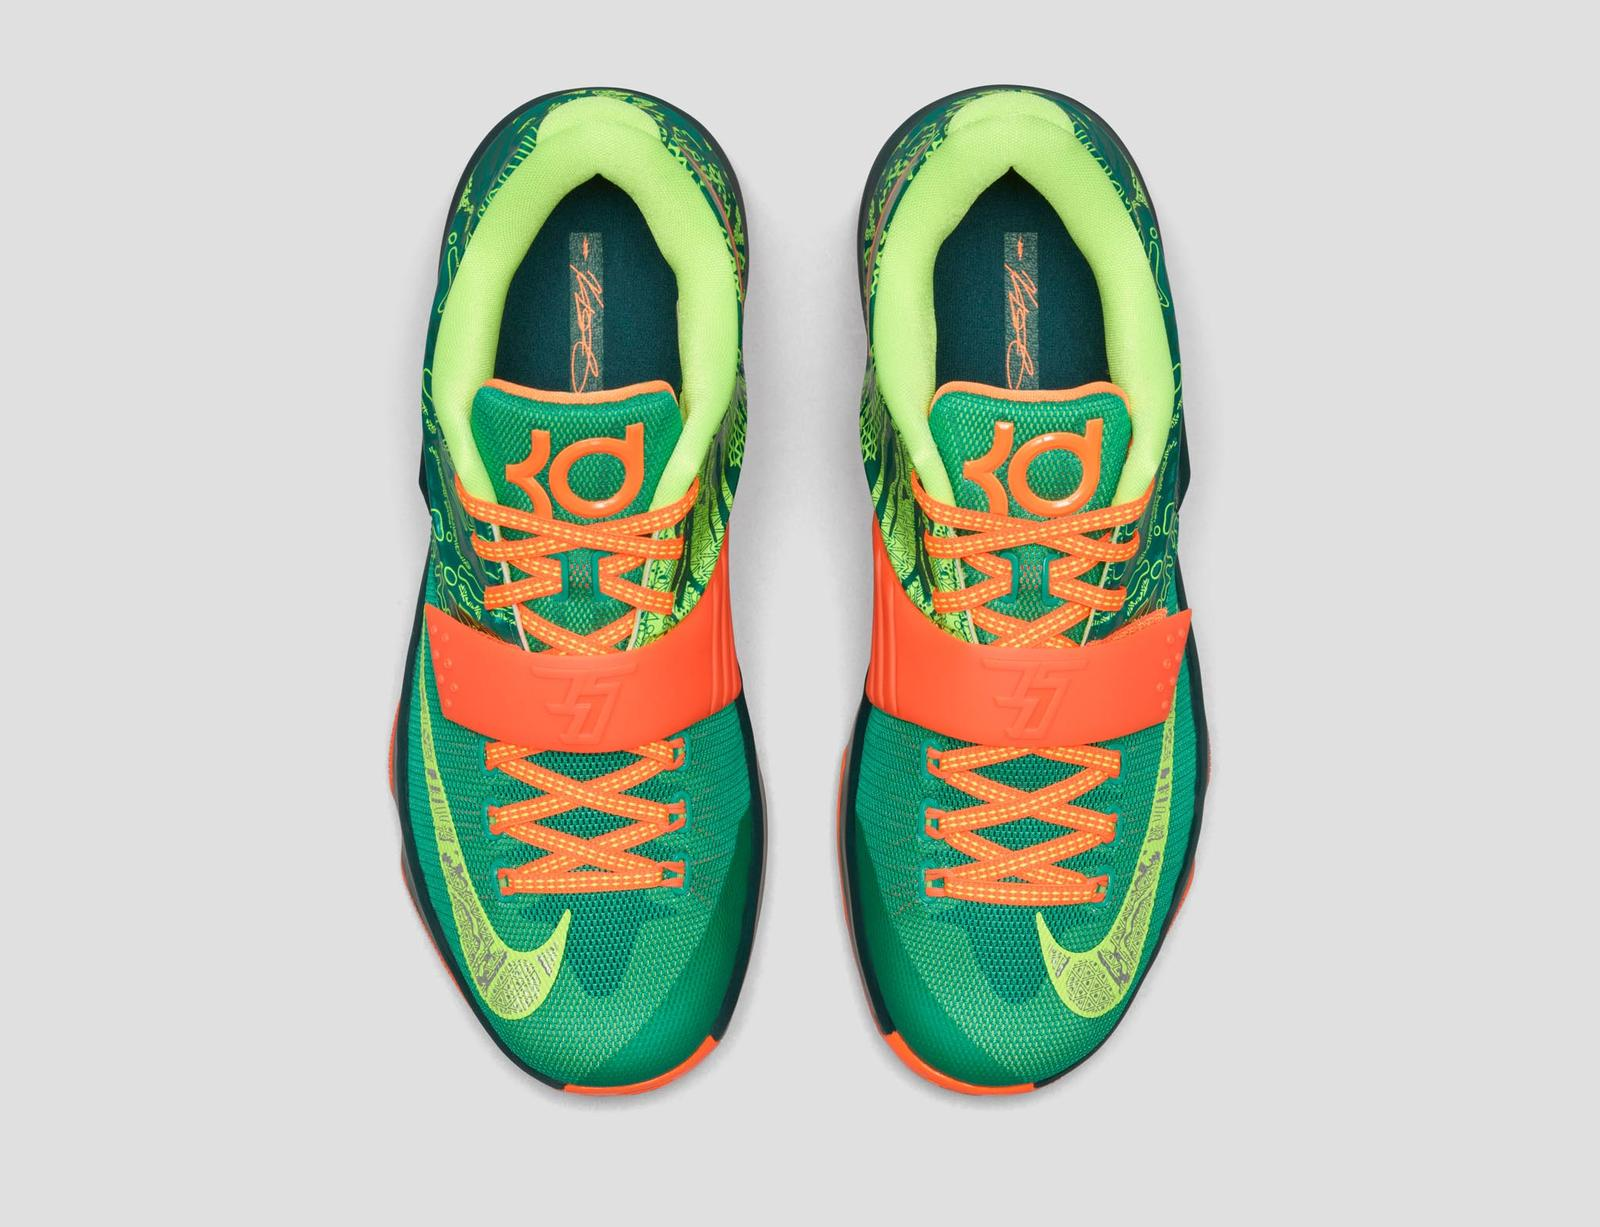 timeless design 79532 fd8ed Nike KD 7 'Weatherman' Officially Unveiled | Def Pen